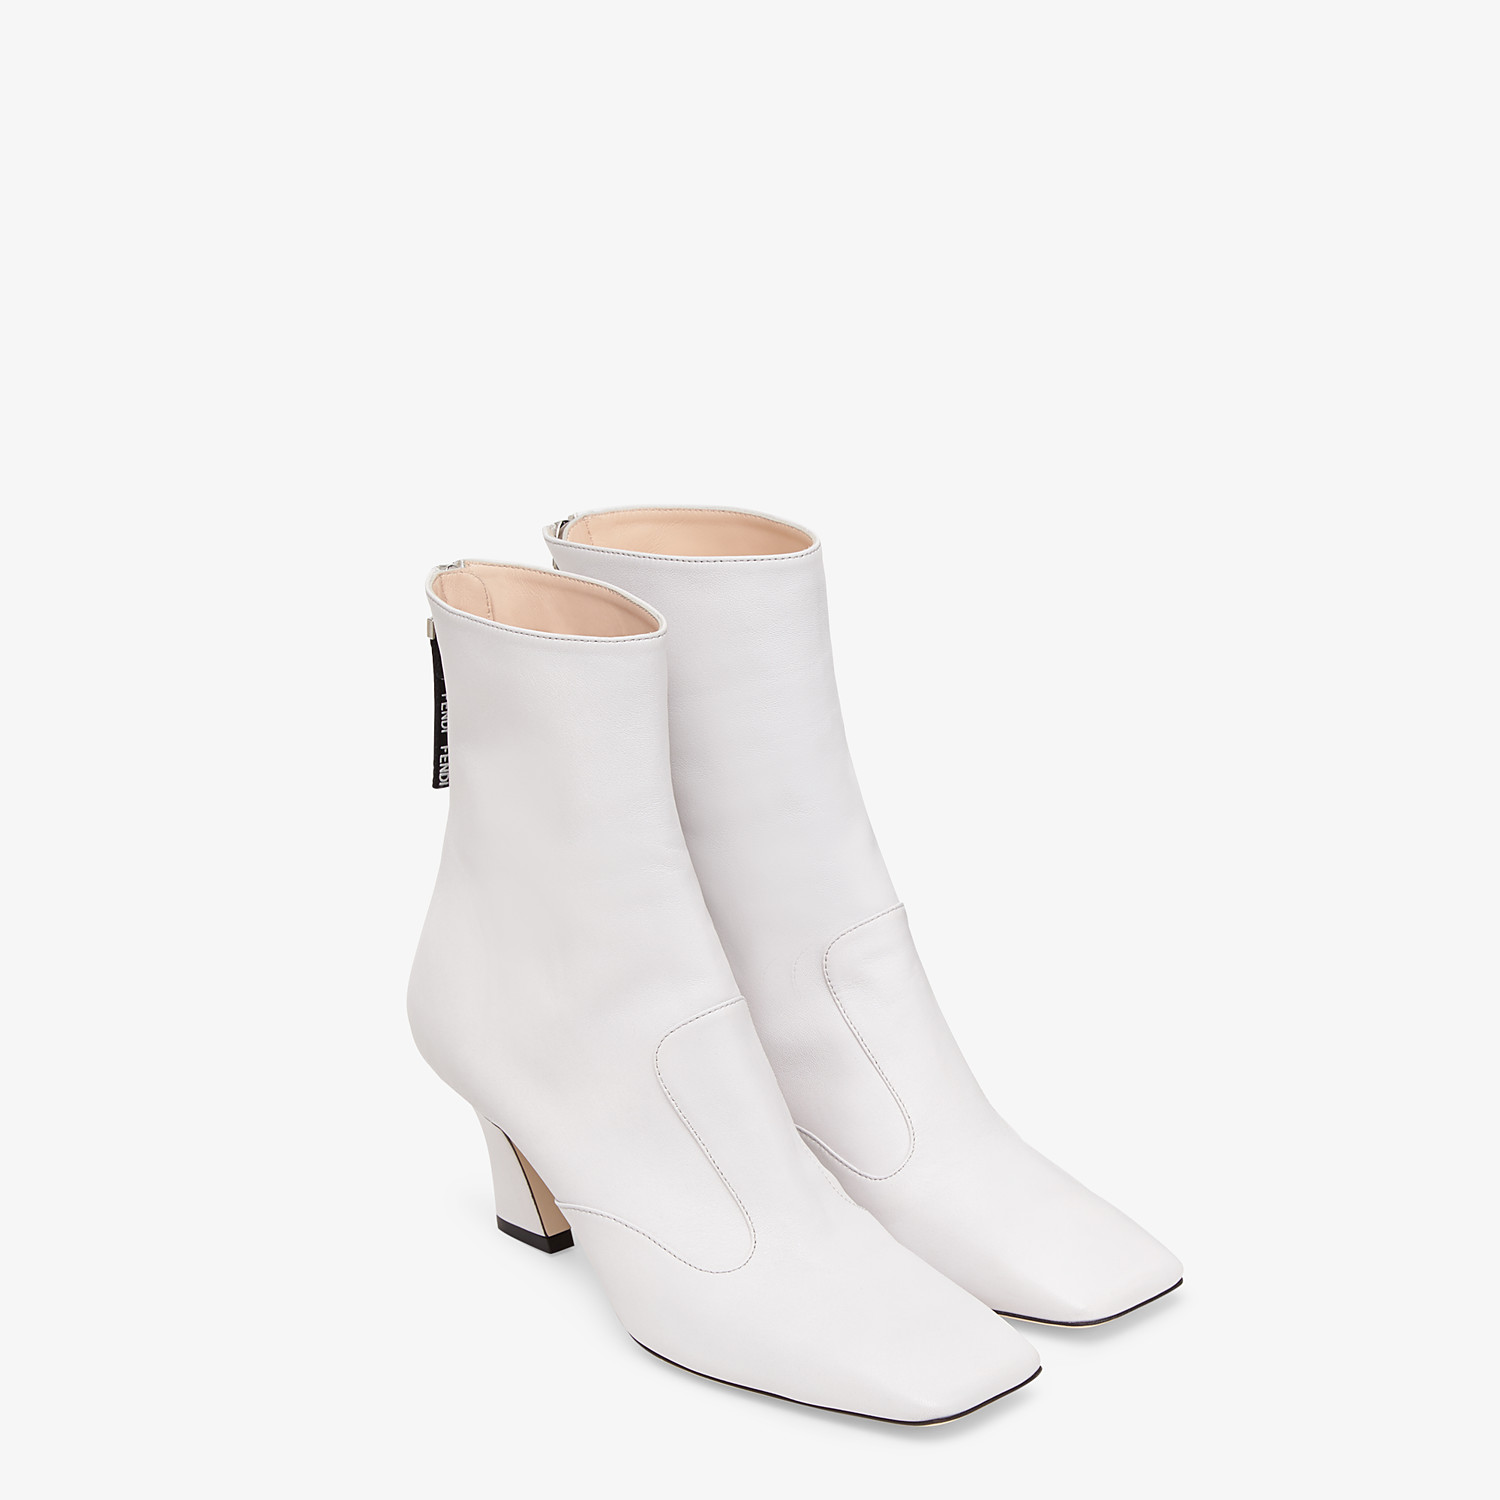 FENDI ANKLE BOOTS - White nappa leather booties - view 4 detail